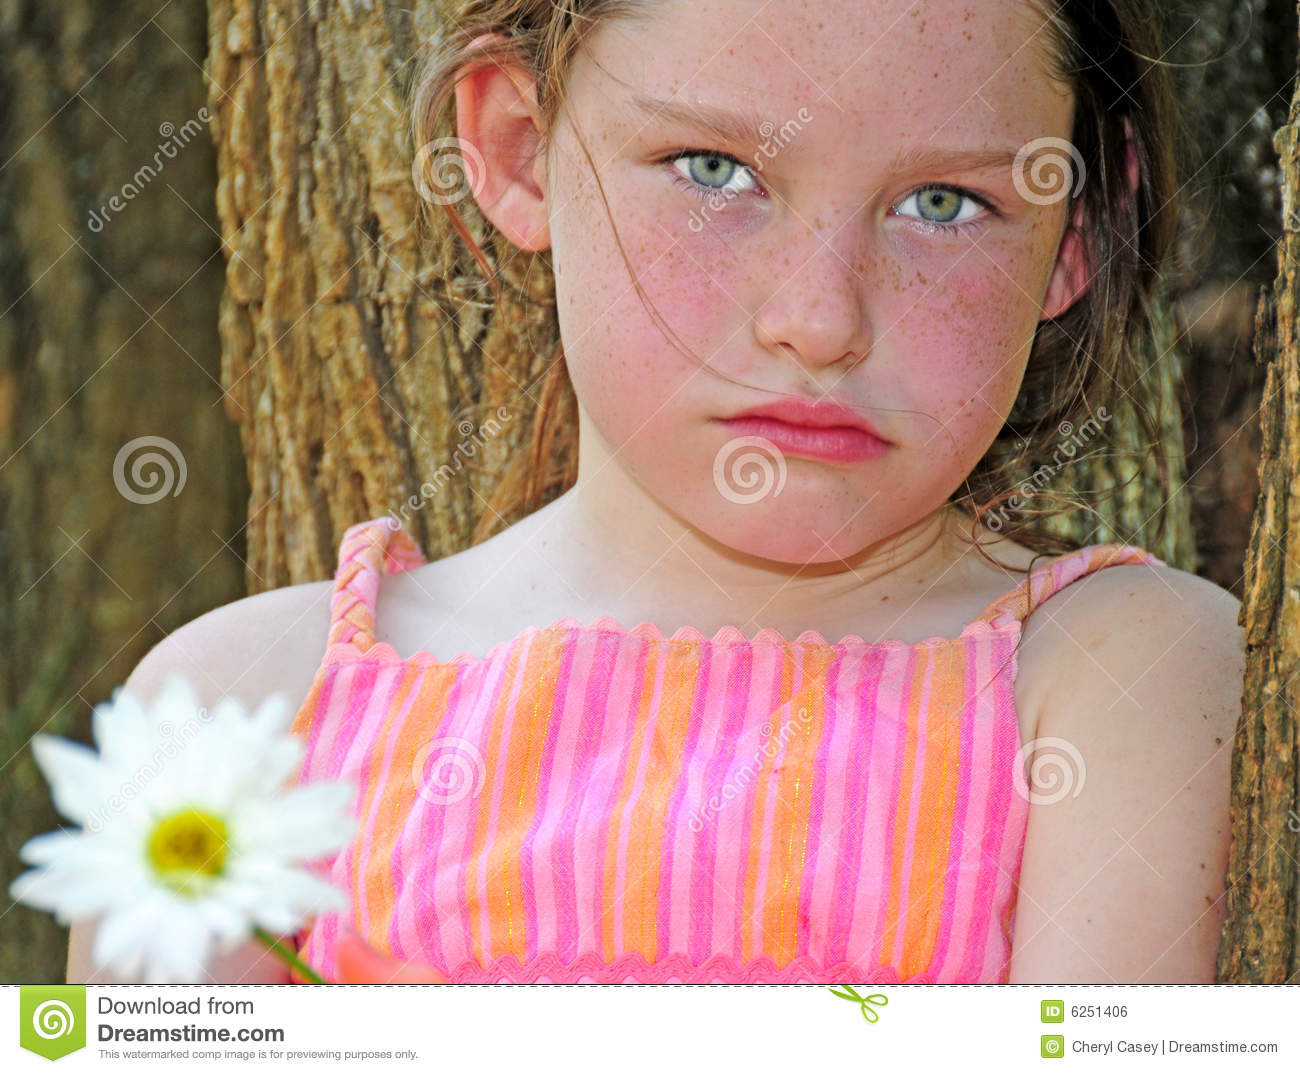 Young Girl Looking Upset Royalty Free Stock Image   Image  6251406